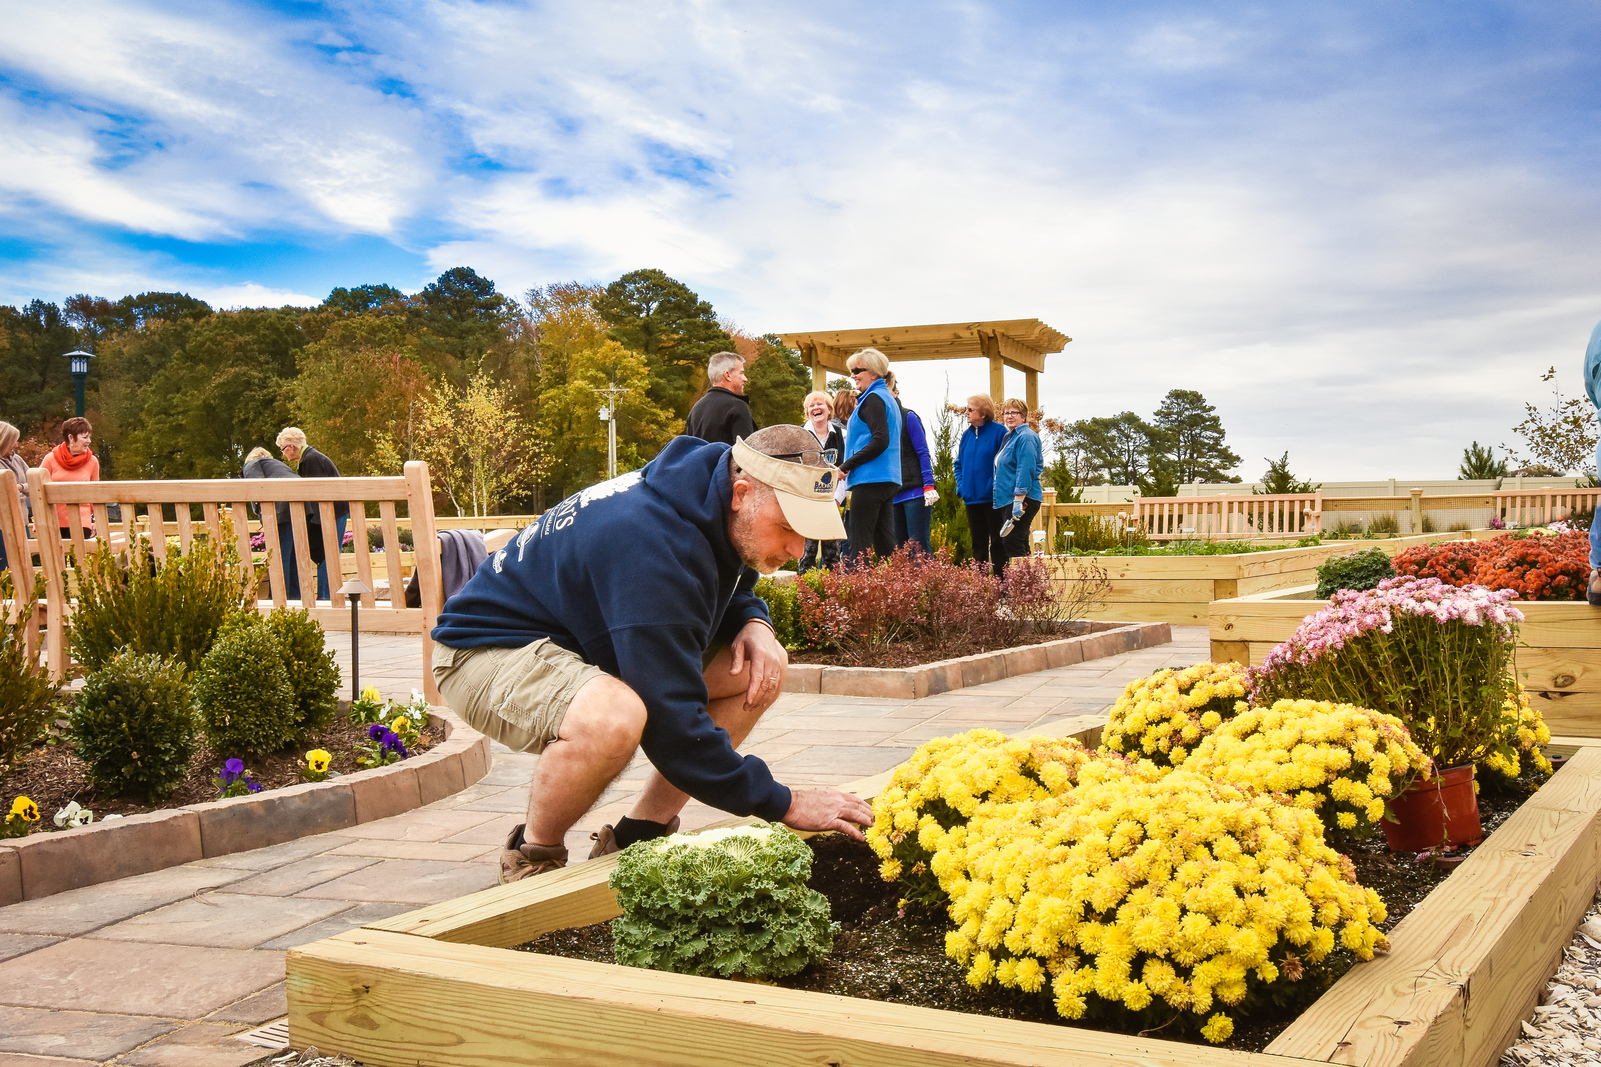 You'll love catching up with neighbors and exploring the herb garden at Bay Forest